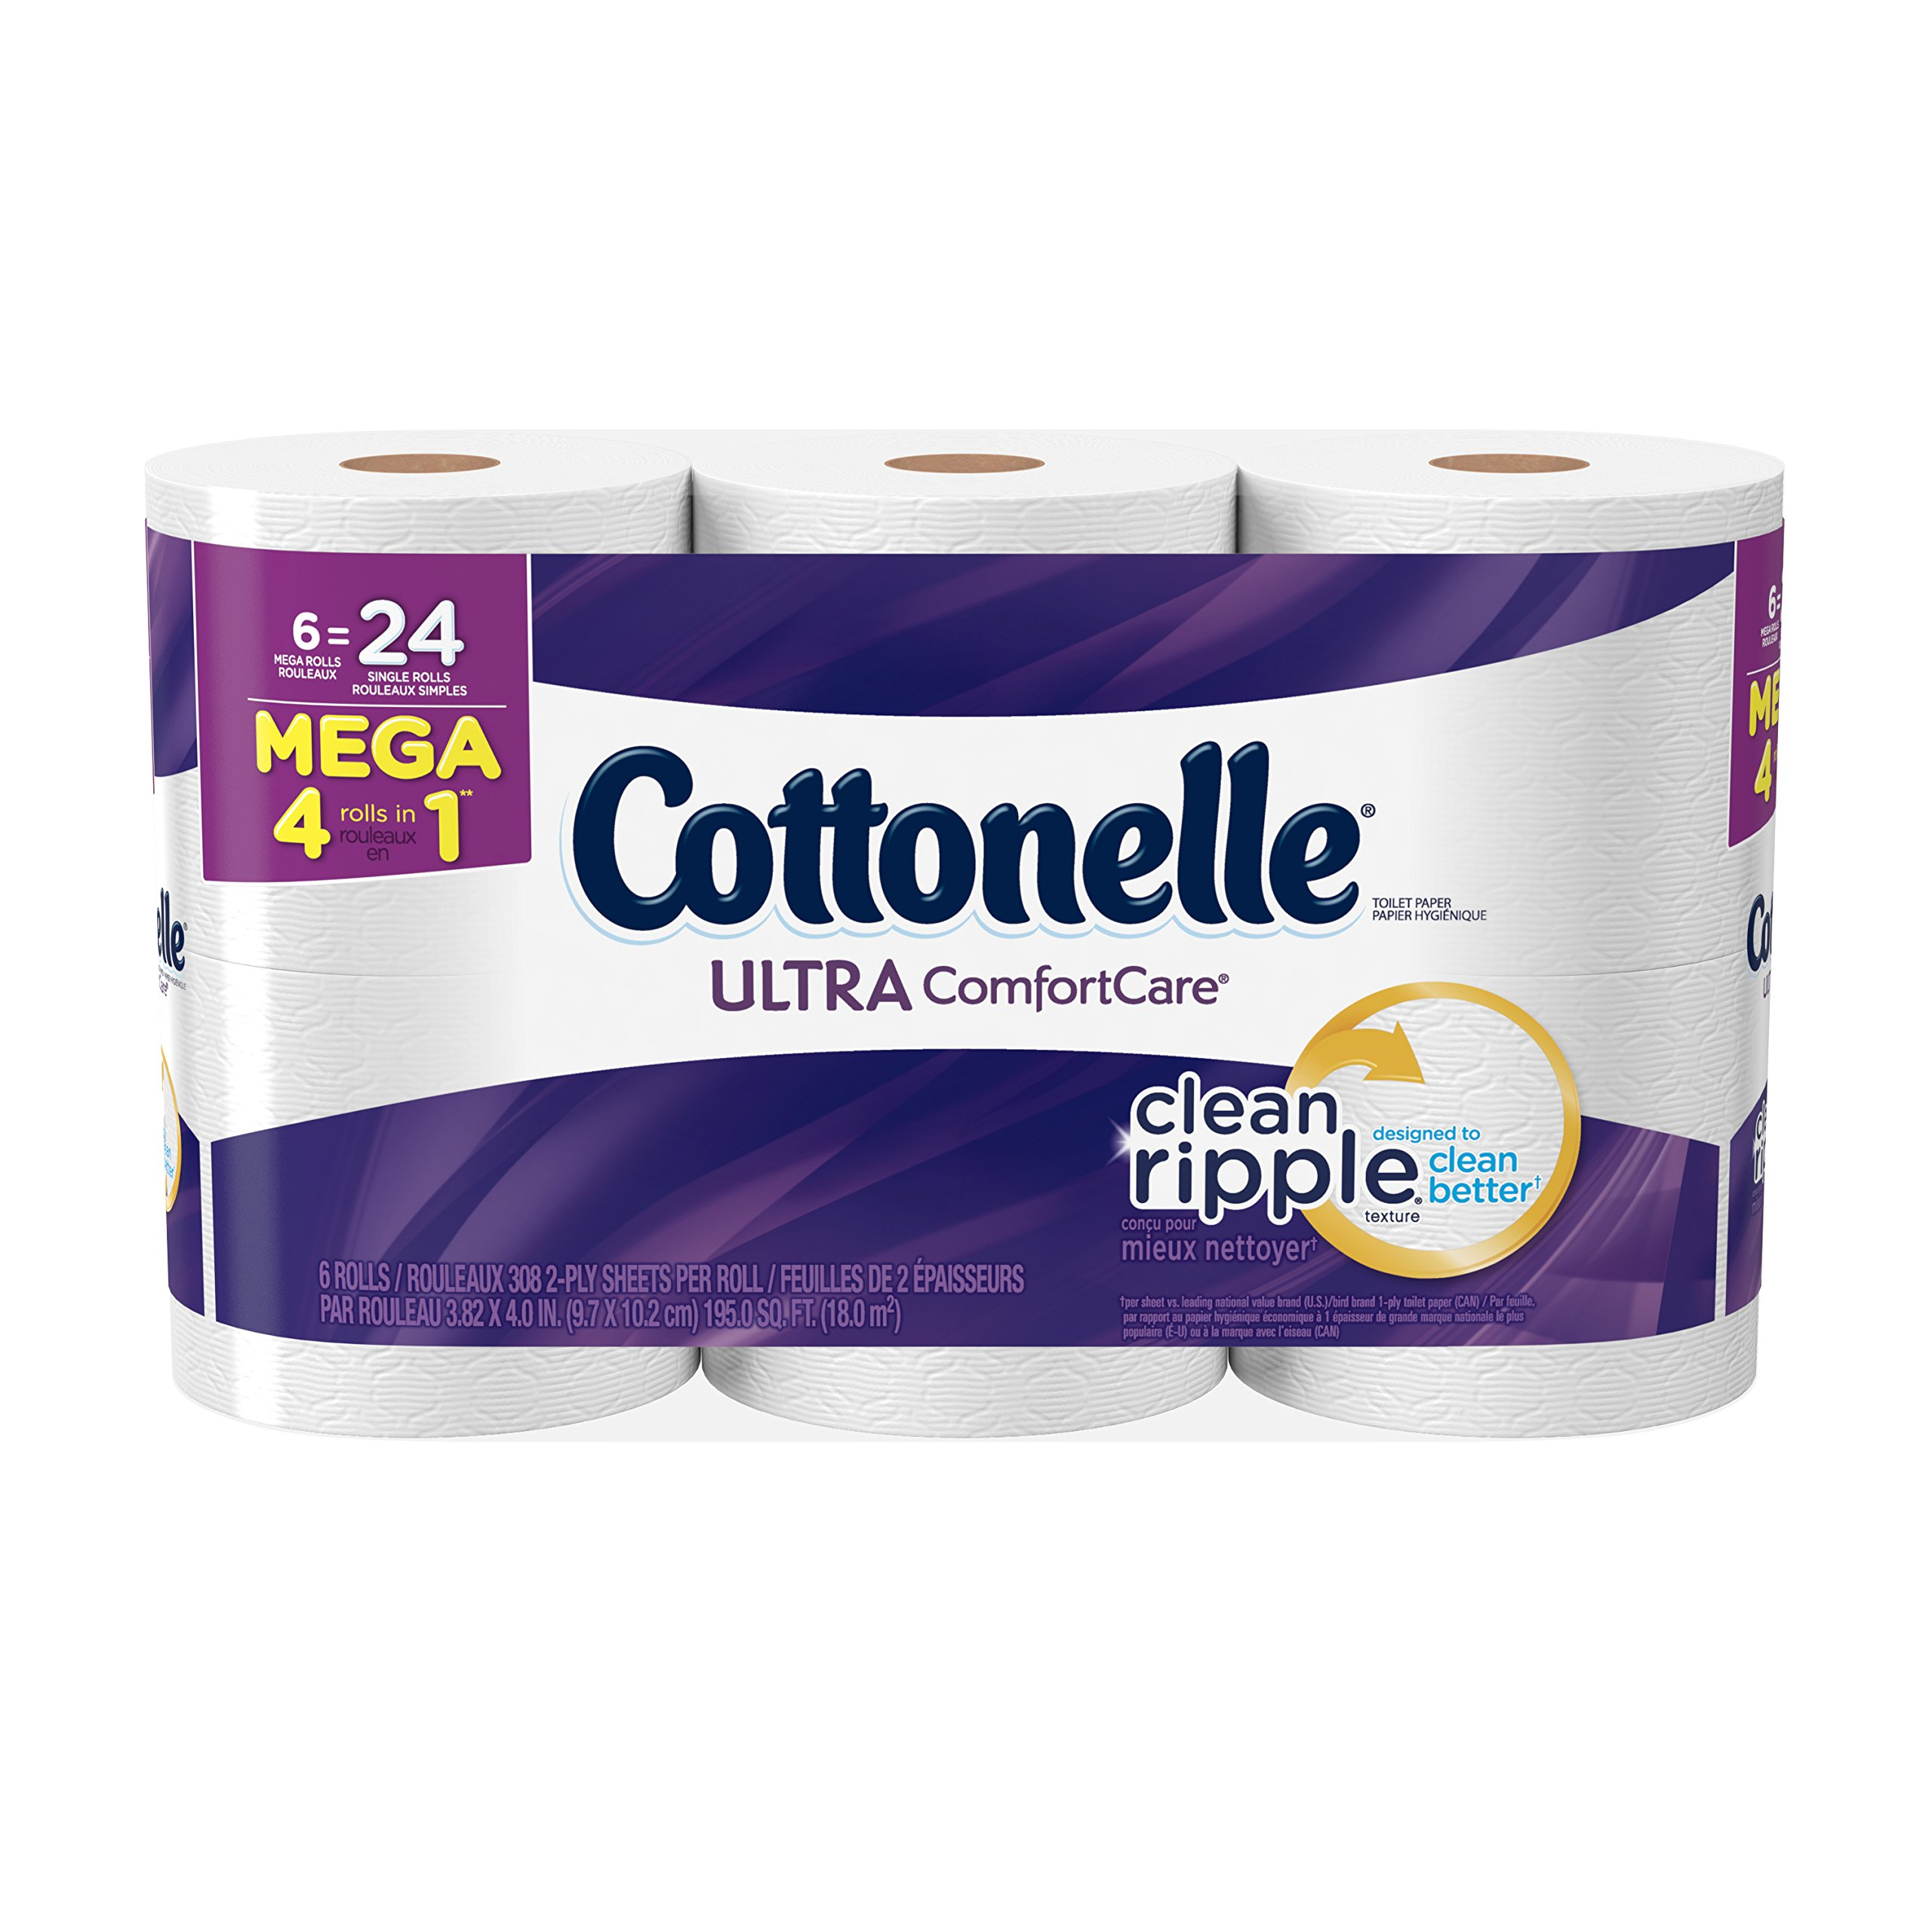 Cottonelle Ultra Comfort Care Toilet Paper, Bath Tissue, 6 Mega Toilet Paper Rolls by Cottonelle